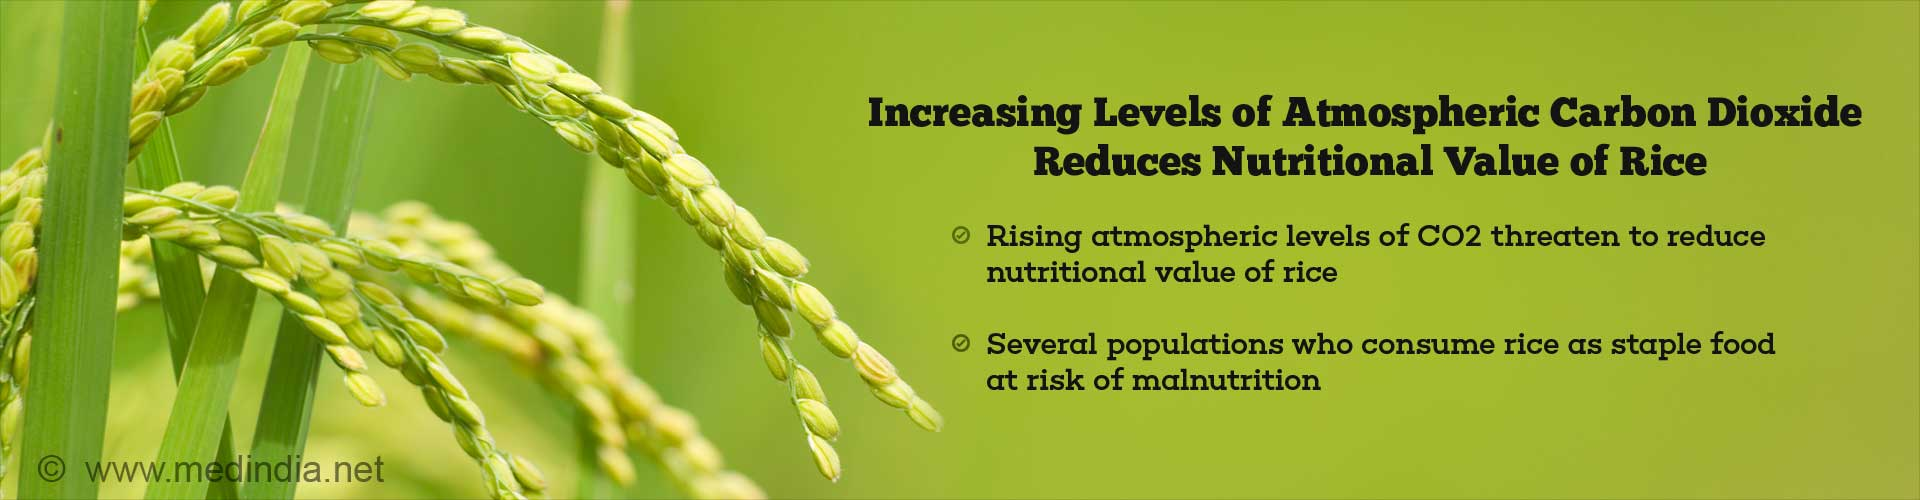 Nutritional Value of Rice Decreases With Increased Levels of Atmospheric Carbon Dioxide